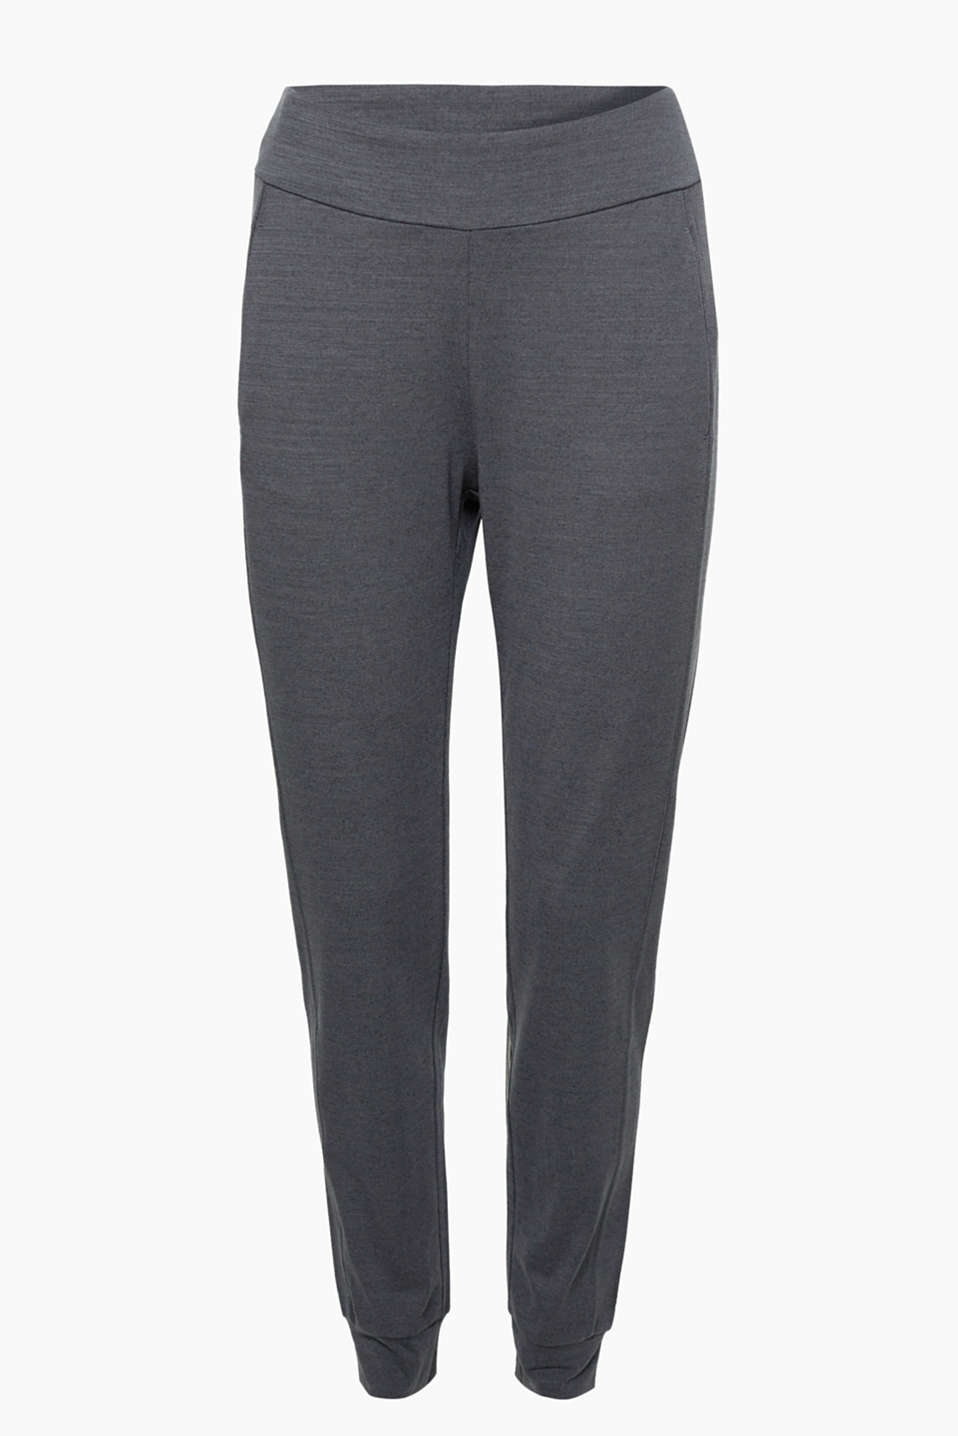 These melange trousers with hem cuffs and slit pockets in a loose, casual, functional style will motivate you to move!